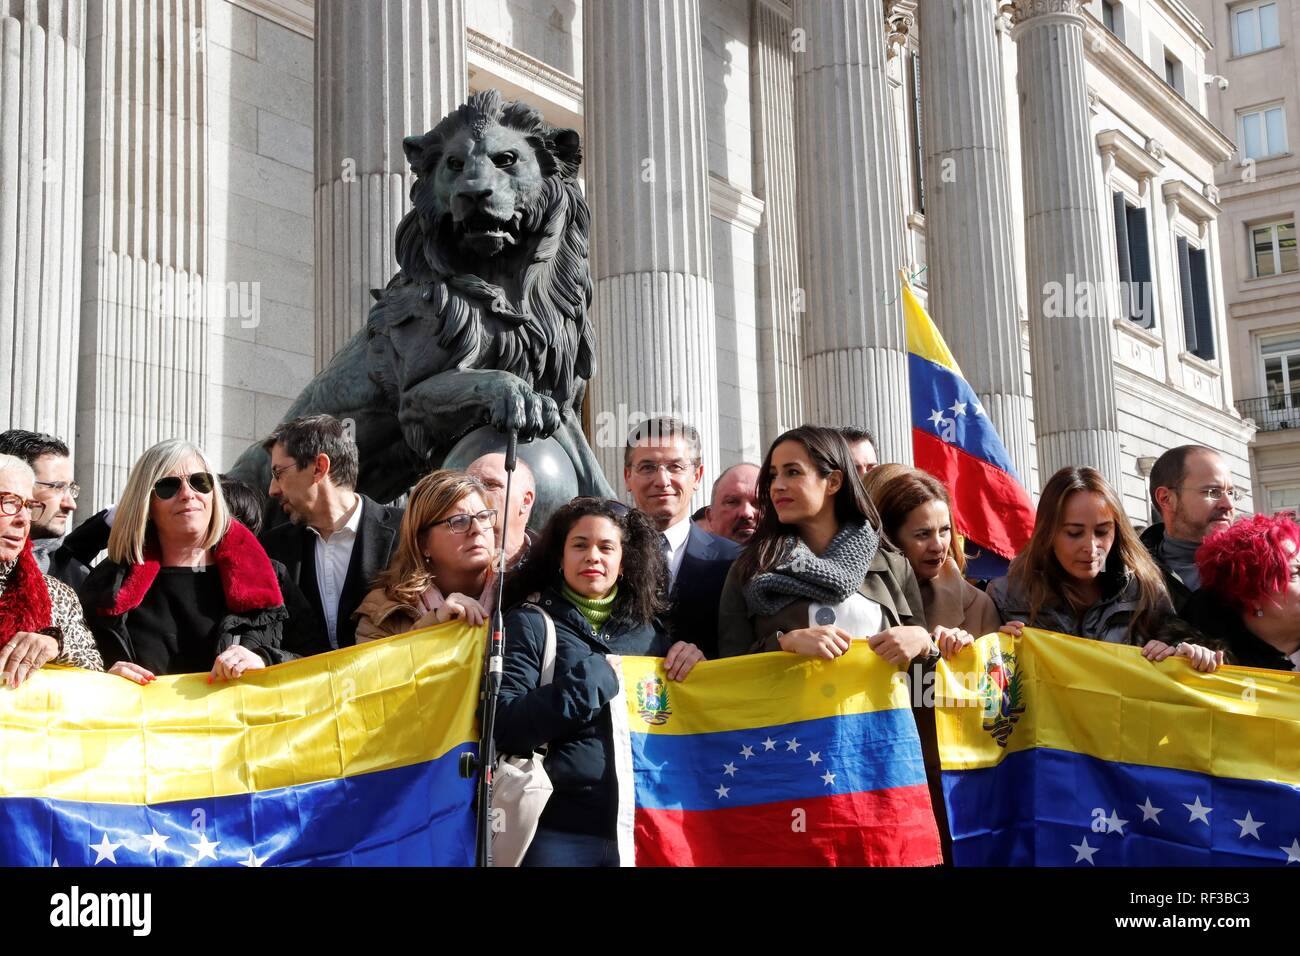 Venezuelan citizens gather in front of the Spanish Parliament's Lower Chamber one day after Juan Guaido, President of the Venezuelan Parliament, proclaimed himself the country's interim president, in Madrid, Spain, 24 January 2019. Rivera and Lopez Gil previously submitted before the Lower Chamber an initiative to ask Pedro Sanchez's Government to recognize Juan Guaido as the legitimate chief of State of Venezuela. EFE/ Zipi - Stock Image